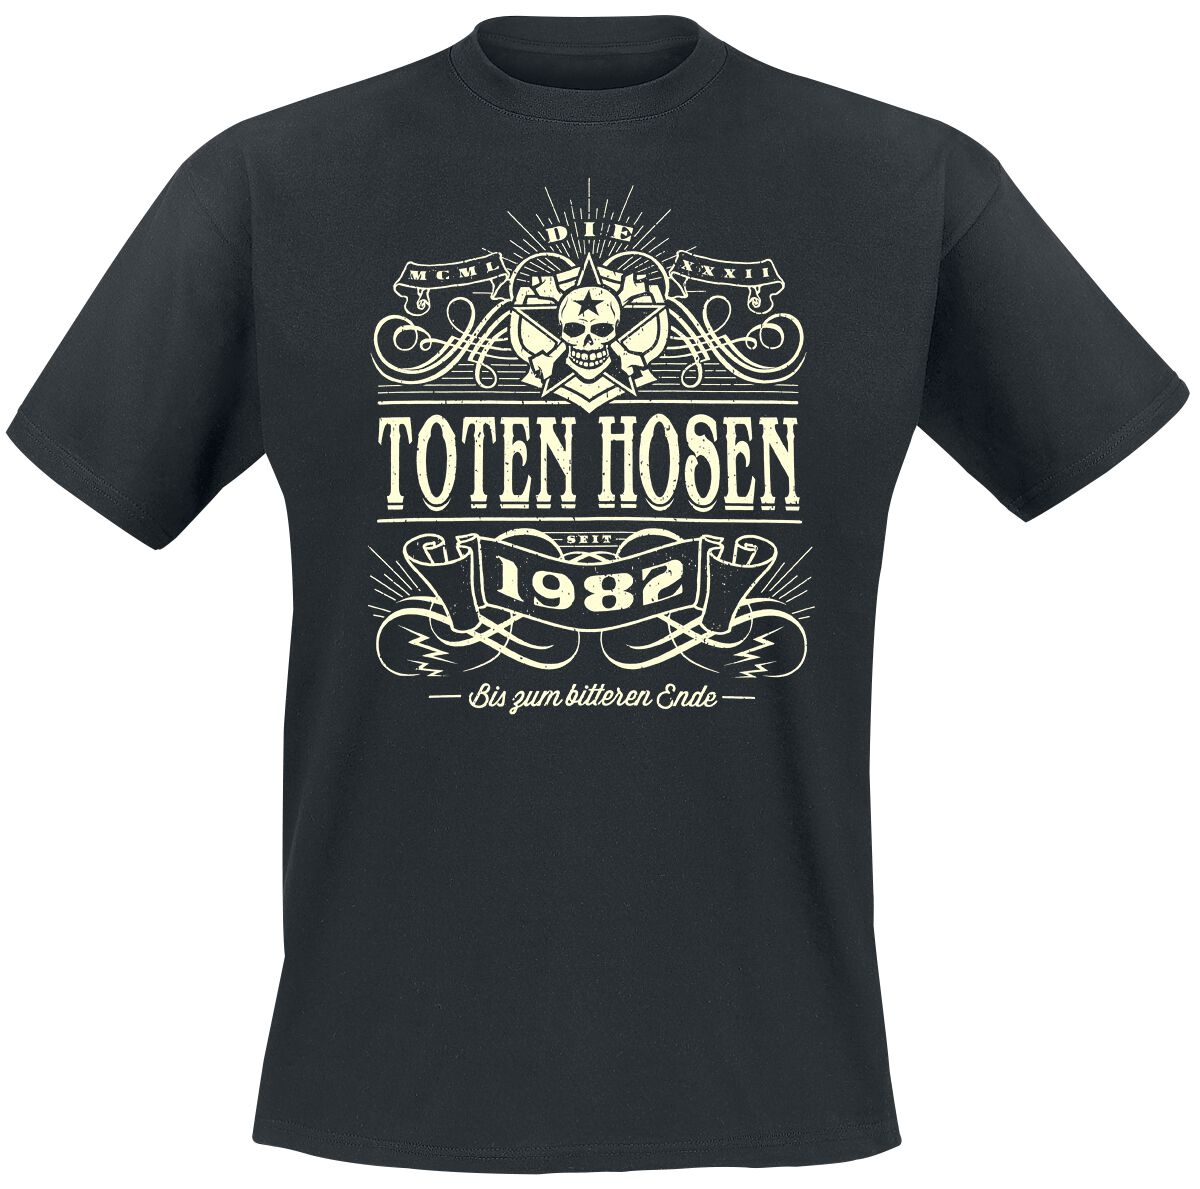 alte schule die toten hosen t shirt emp. Black Bedroom Furniture Sets. Home Design Ideas